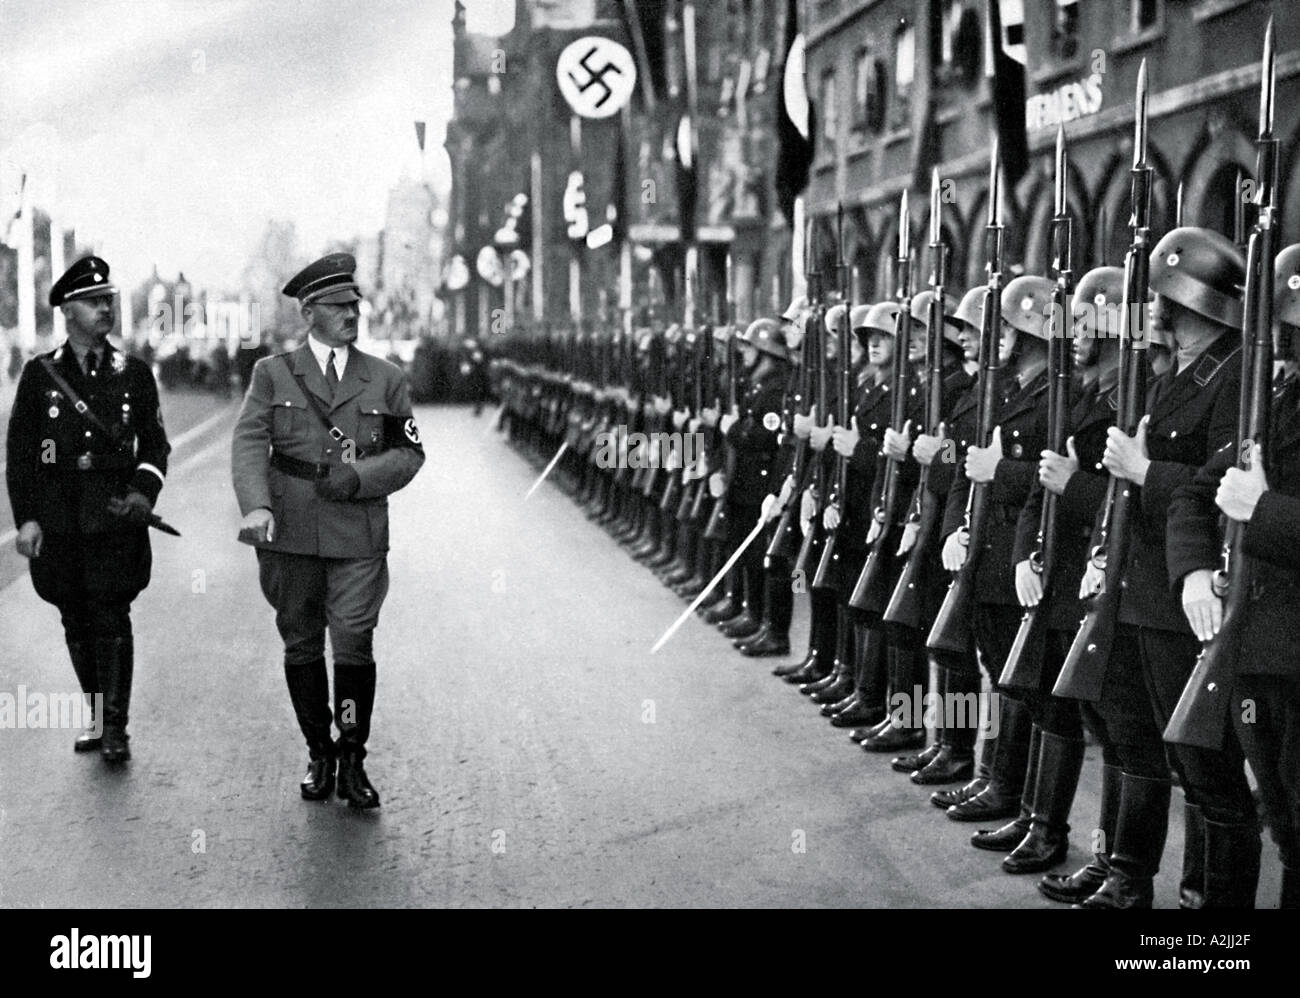 ADOLF HITLER and Heinrich Himmler review a parade of Hitler s personal guard - Stock Image